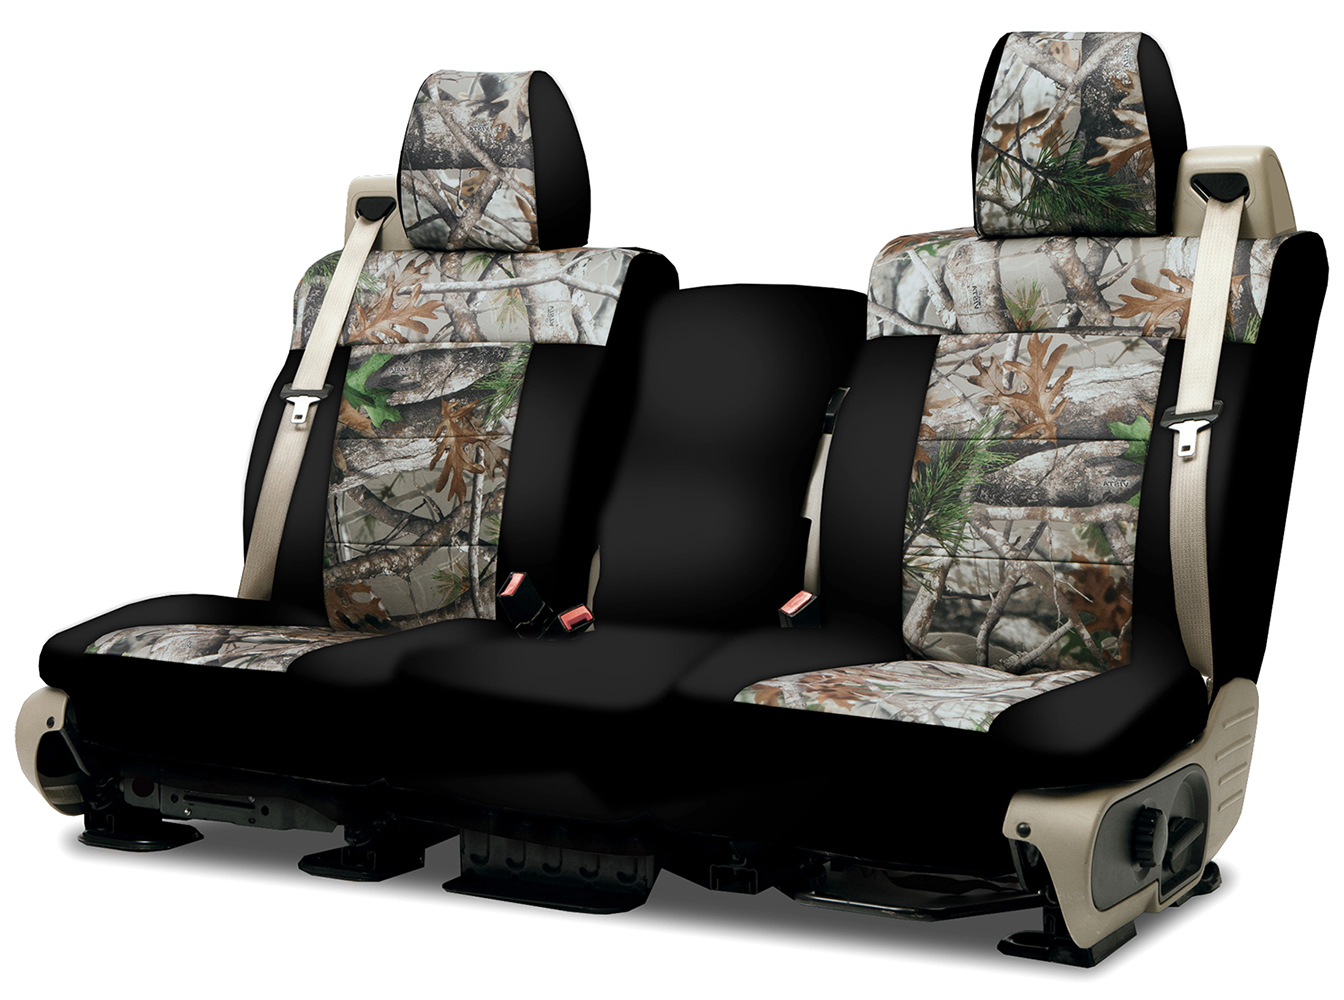 Lg on Jeep Liberty Seat Covers